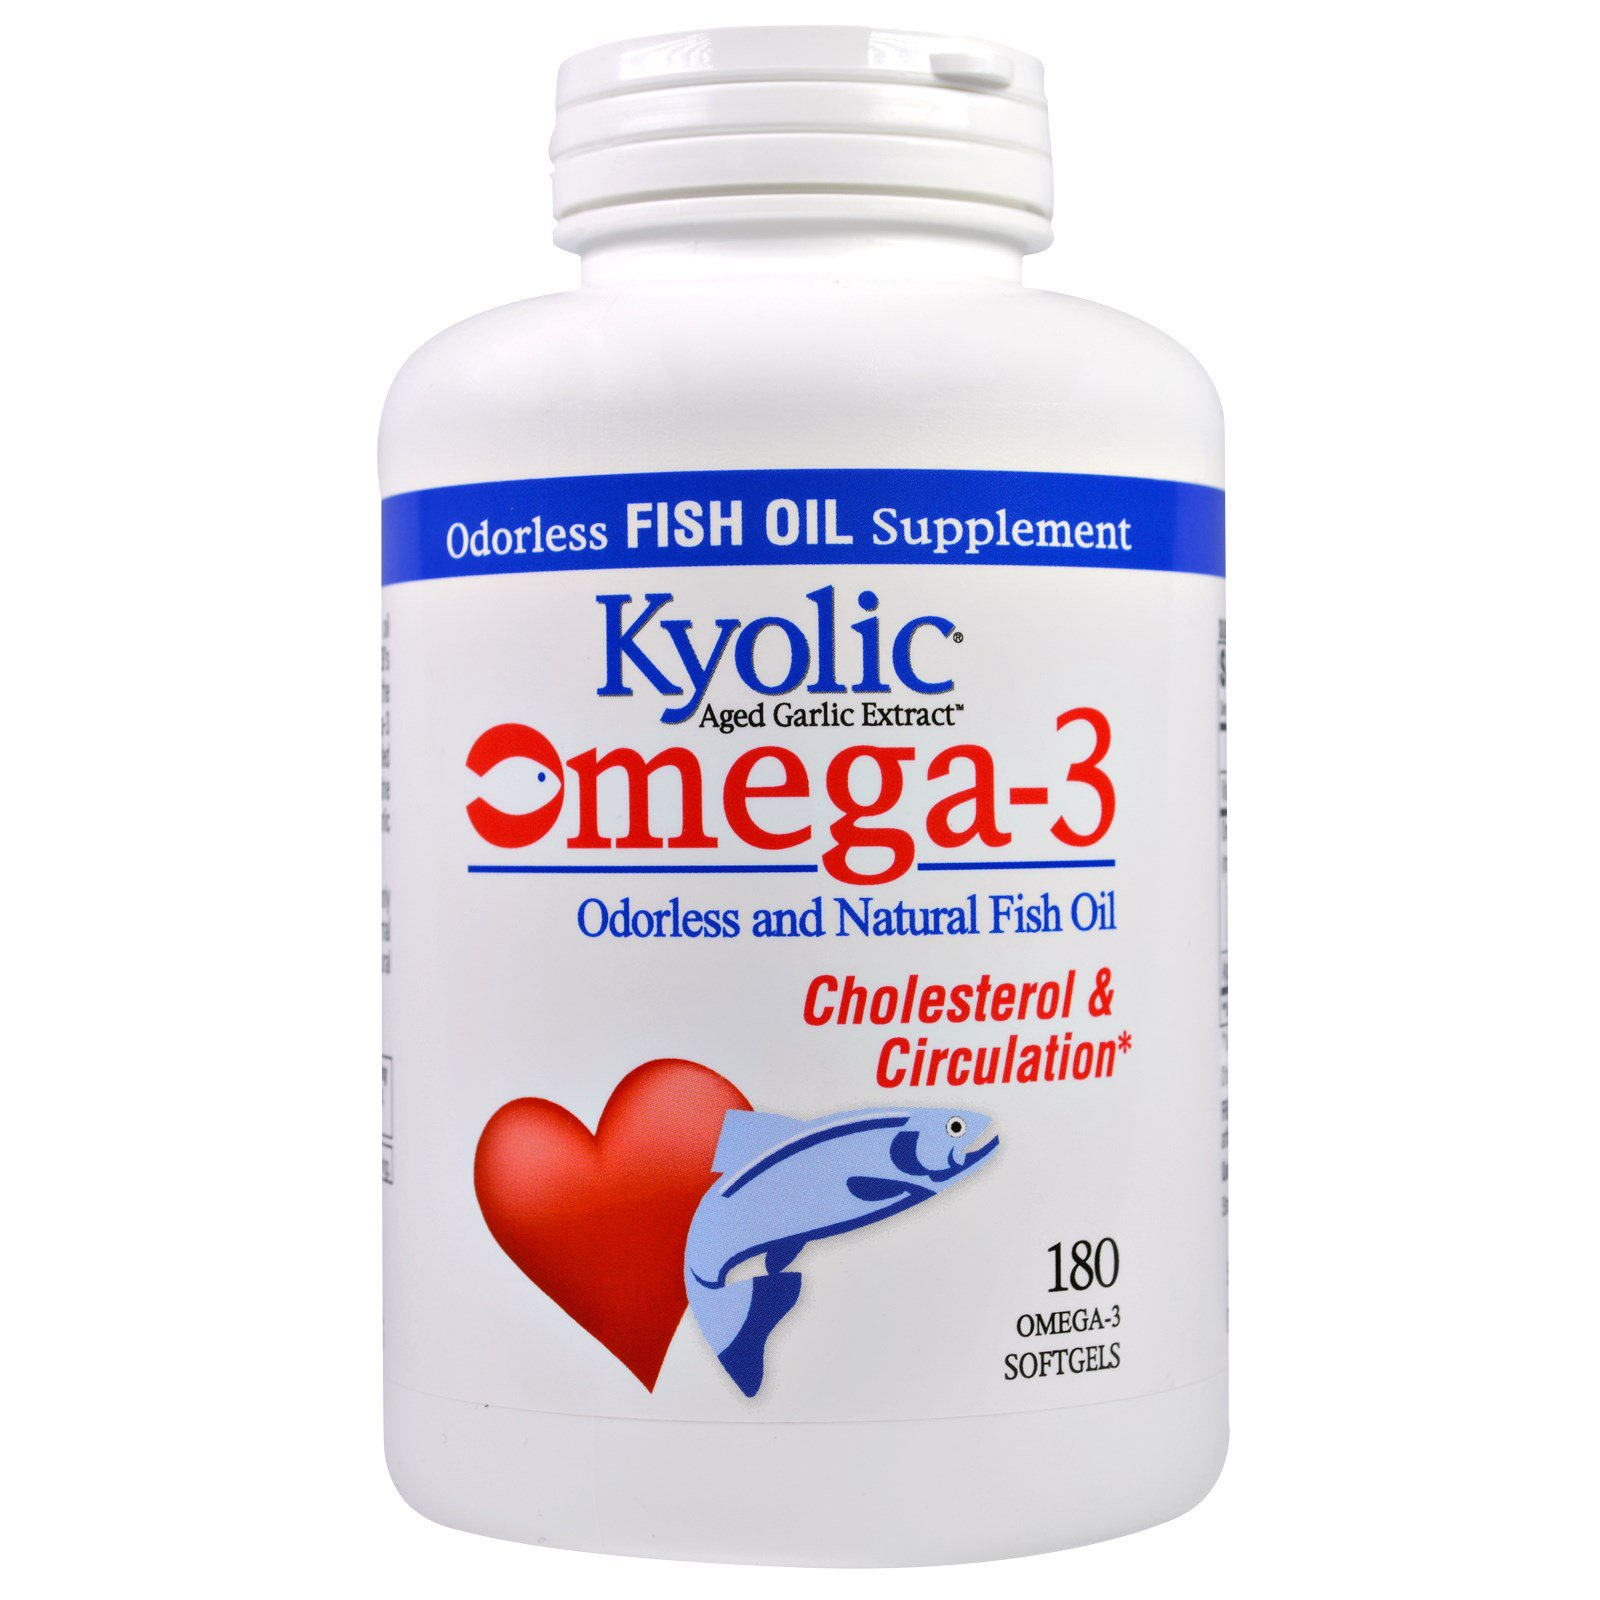 wakunaga kyolic omega 3 odorless and natural fish oil 180 omega 3 softgels. Black Bedroom Furniture Sets. Home Design Ideas